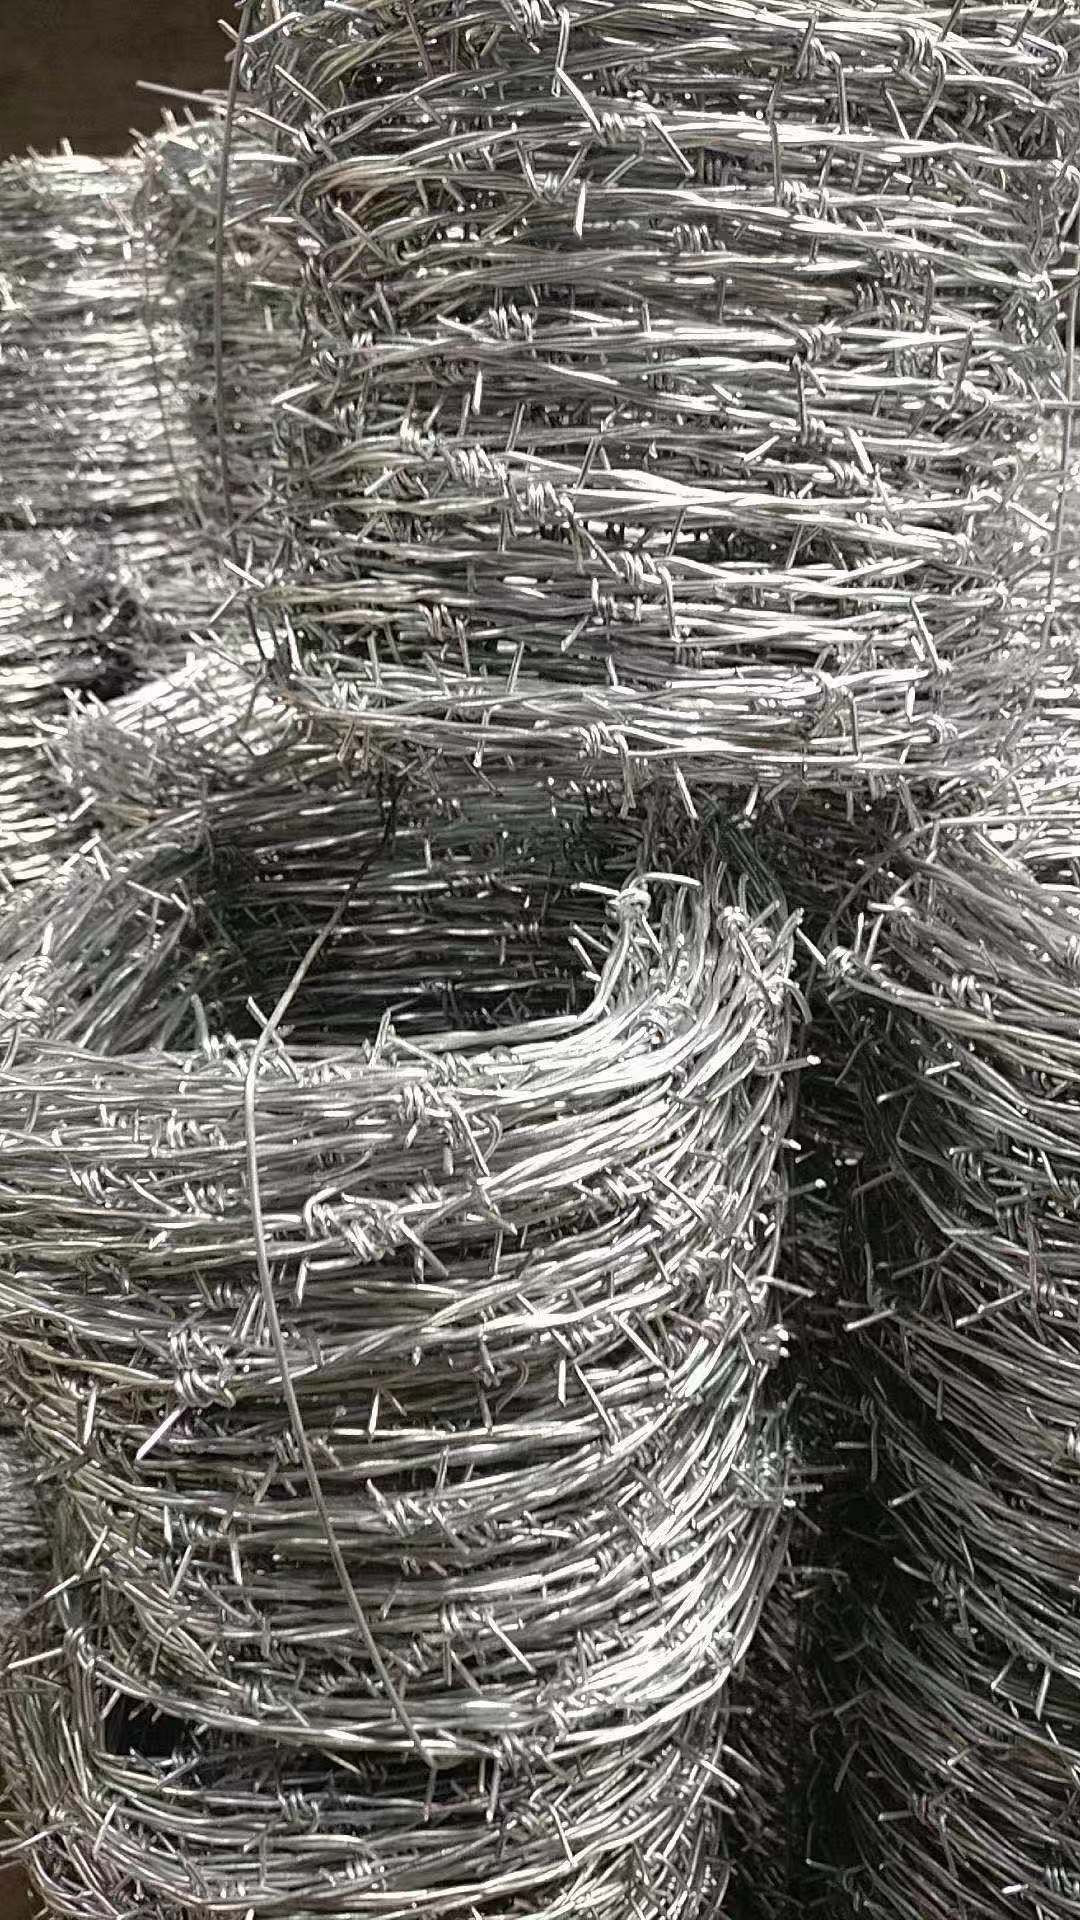 Highway Hot dipped galvanized barbed wire fence wire double strand double twisted barbed wire